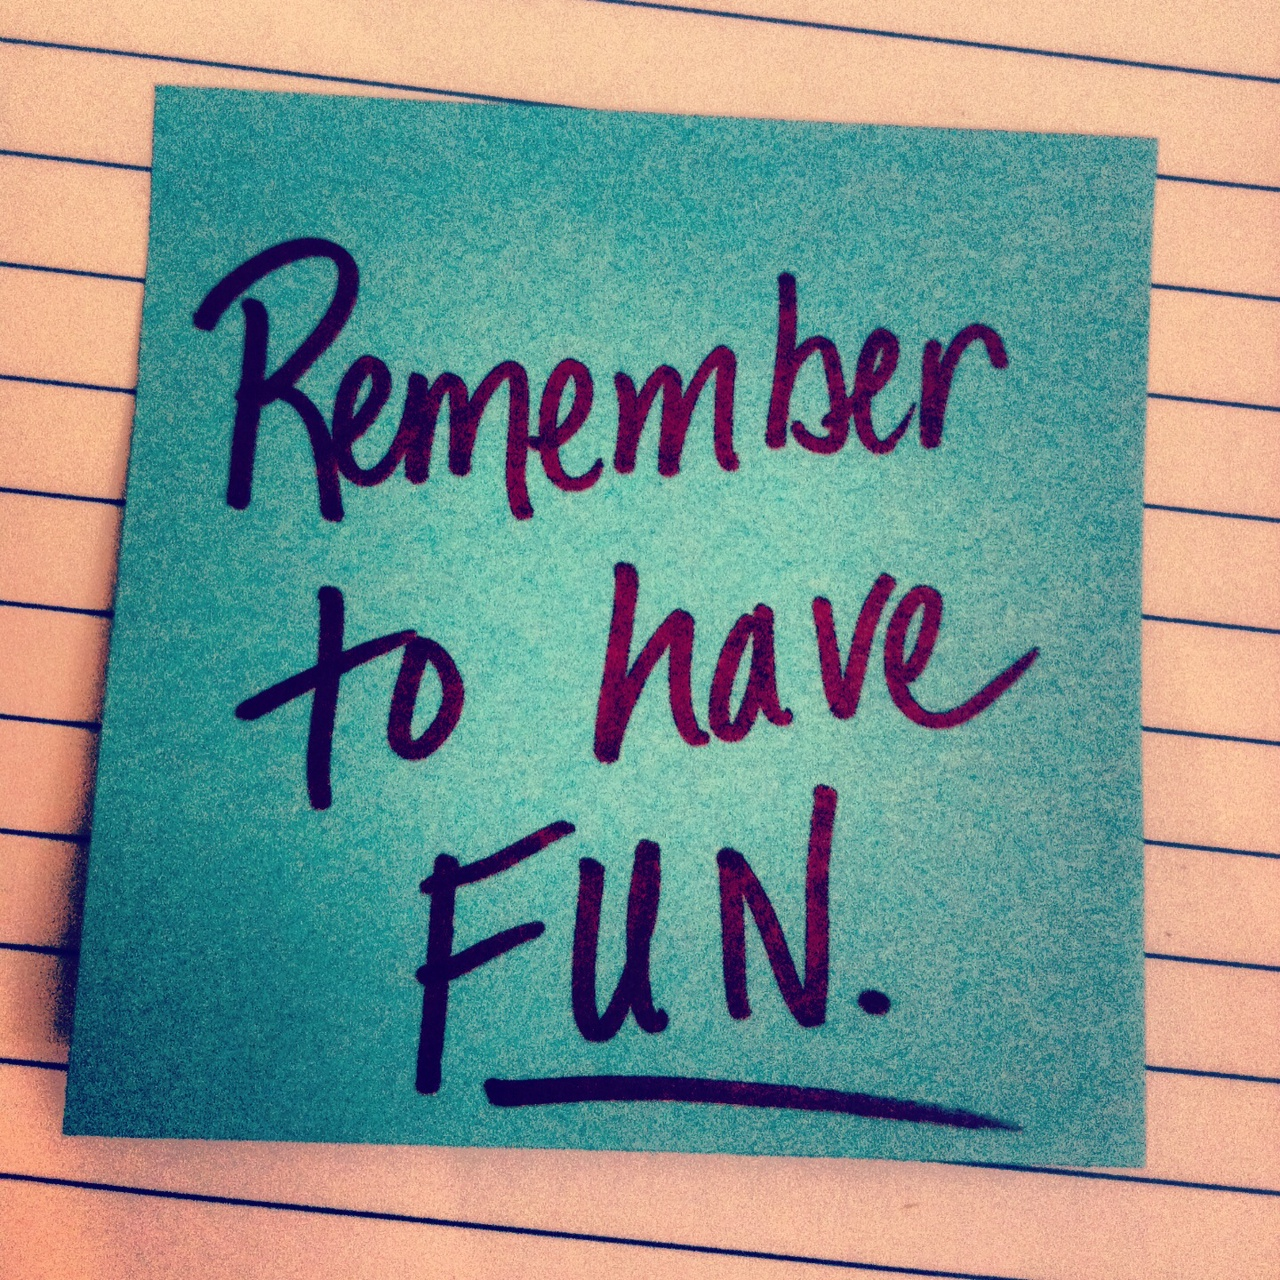 http://hosting.webspell.fr/images/2013/05/03/remember-to-have-fun.jpg